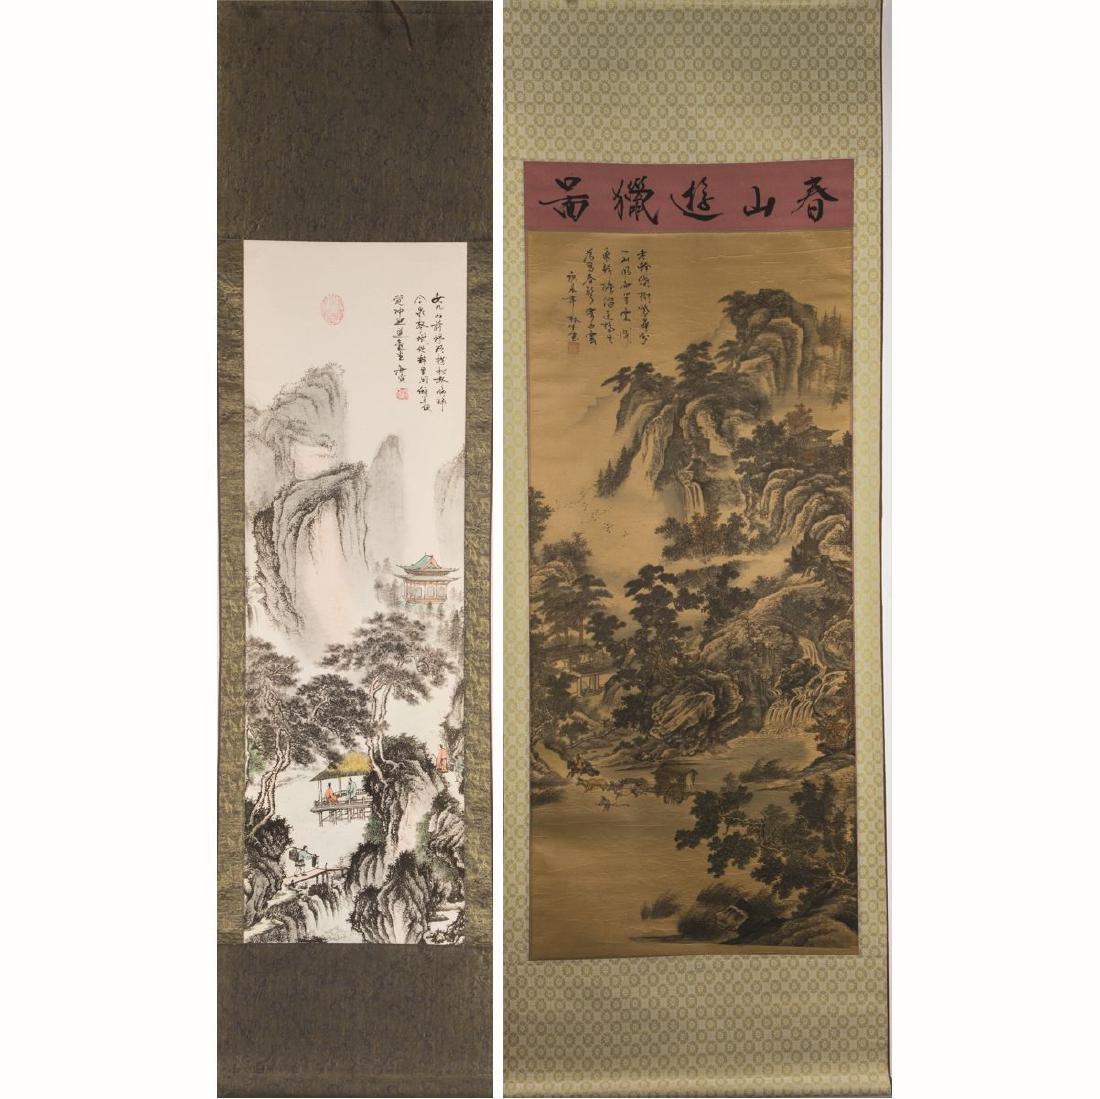 Two Chinese Printed Reproduction Scrolls, 20th Century,